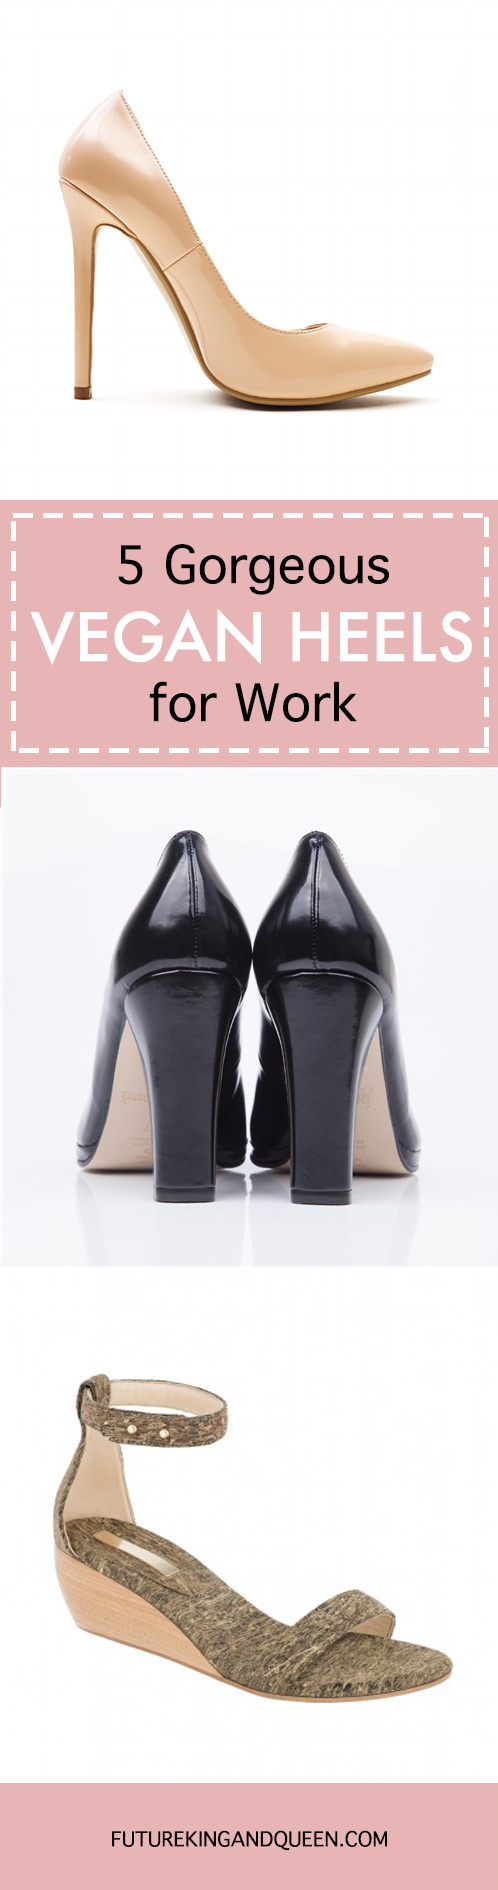 vegan-womens-heels-for-work-ethical-fair-fashion.jpg